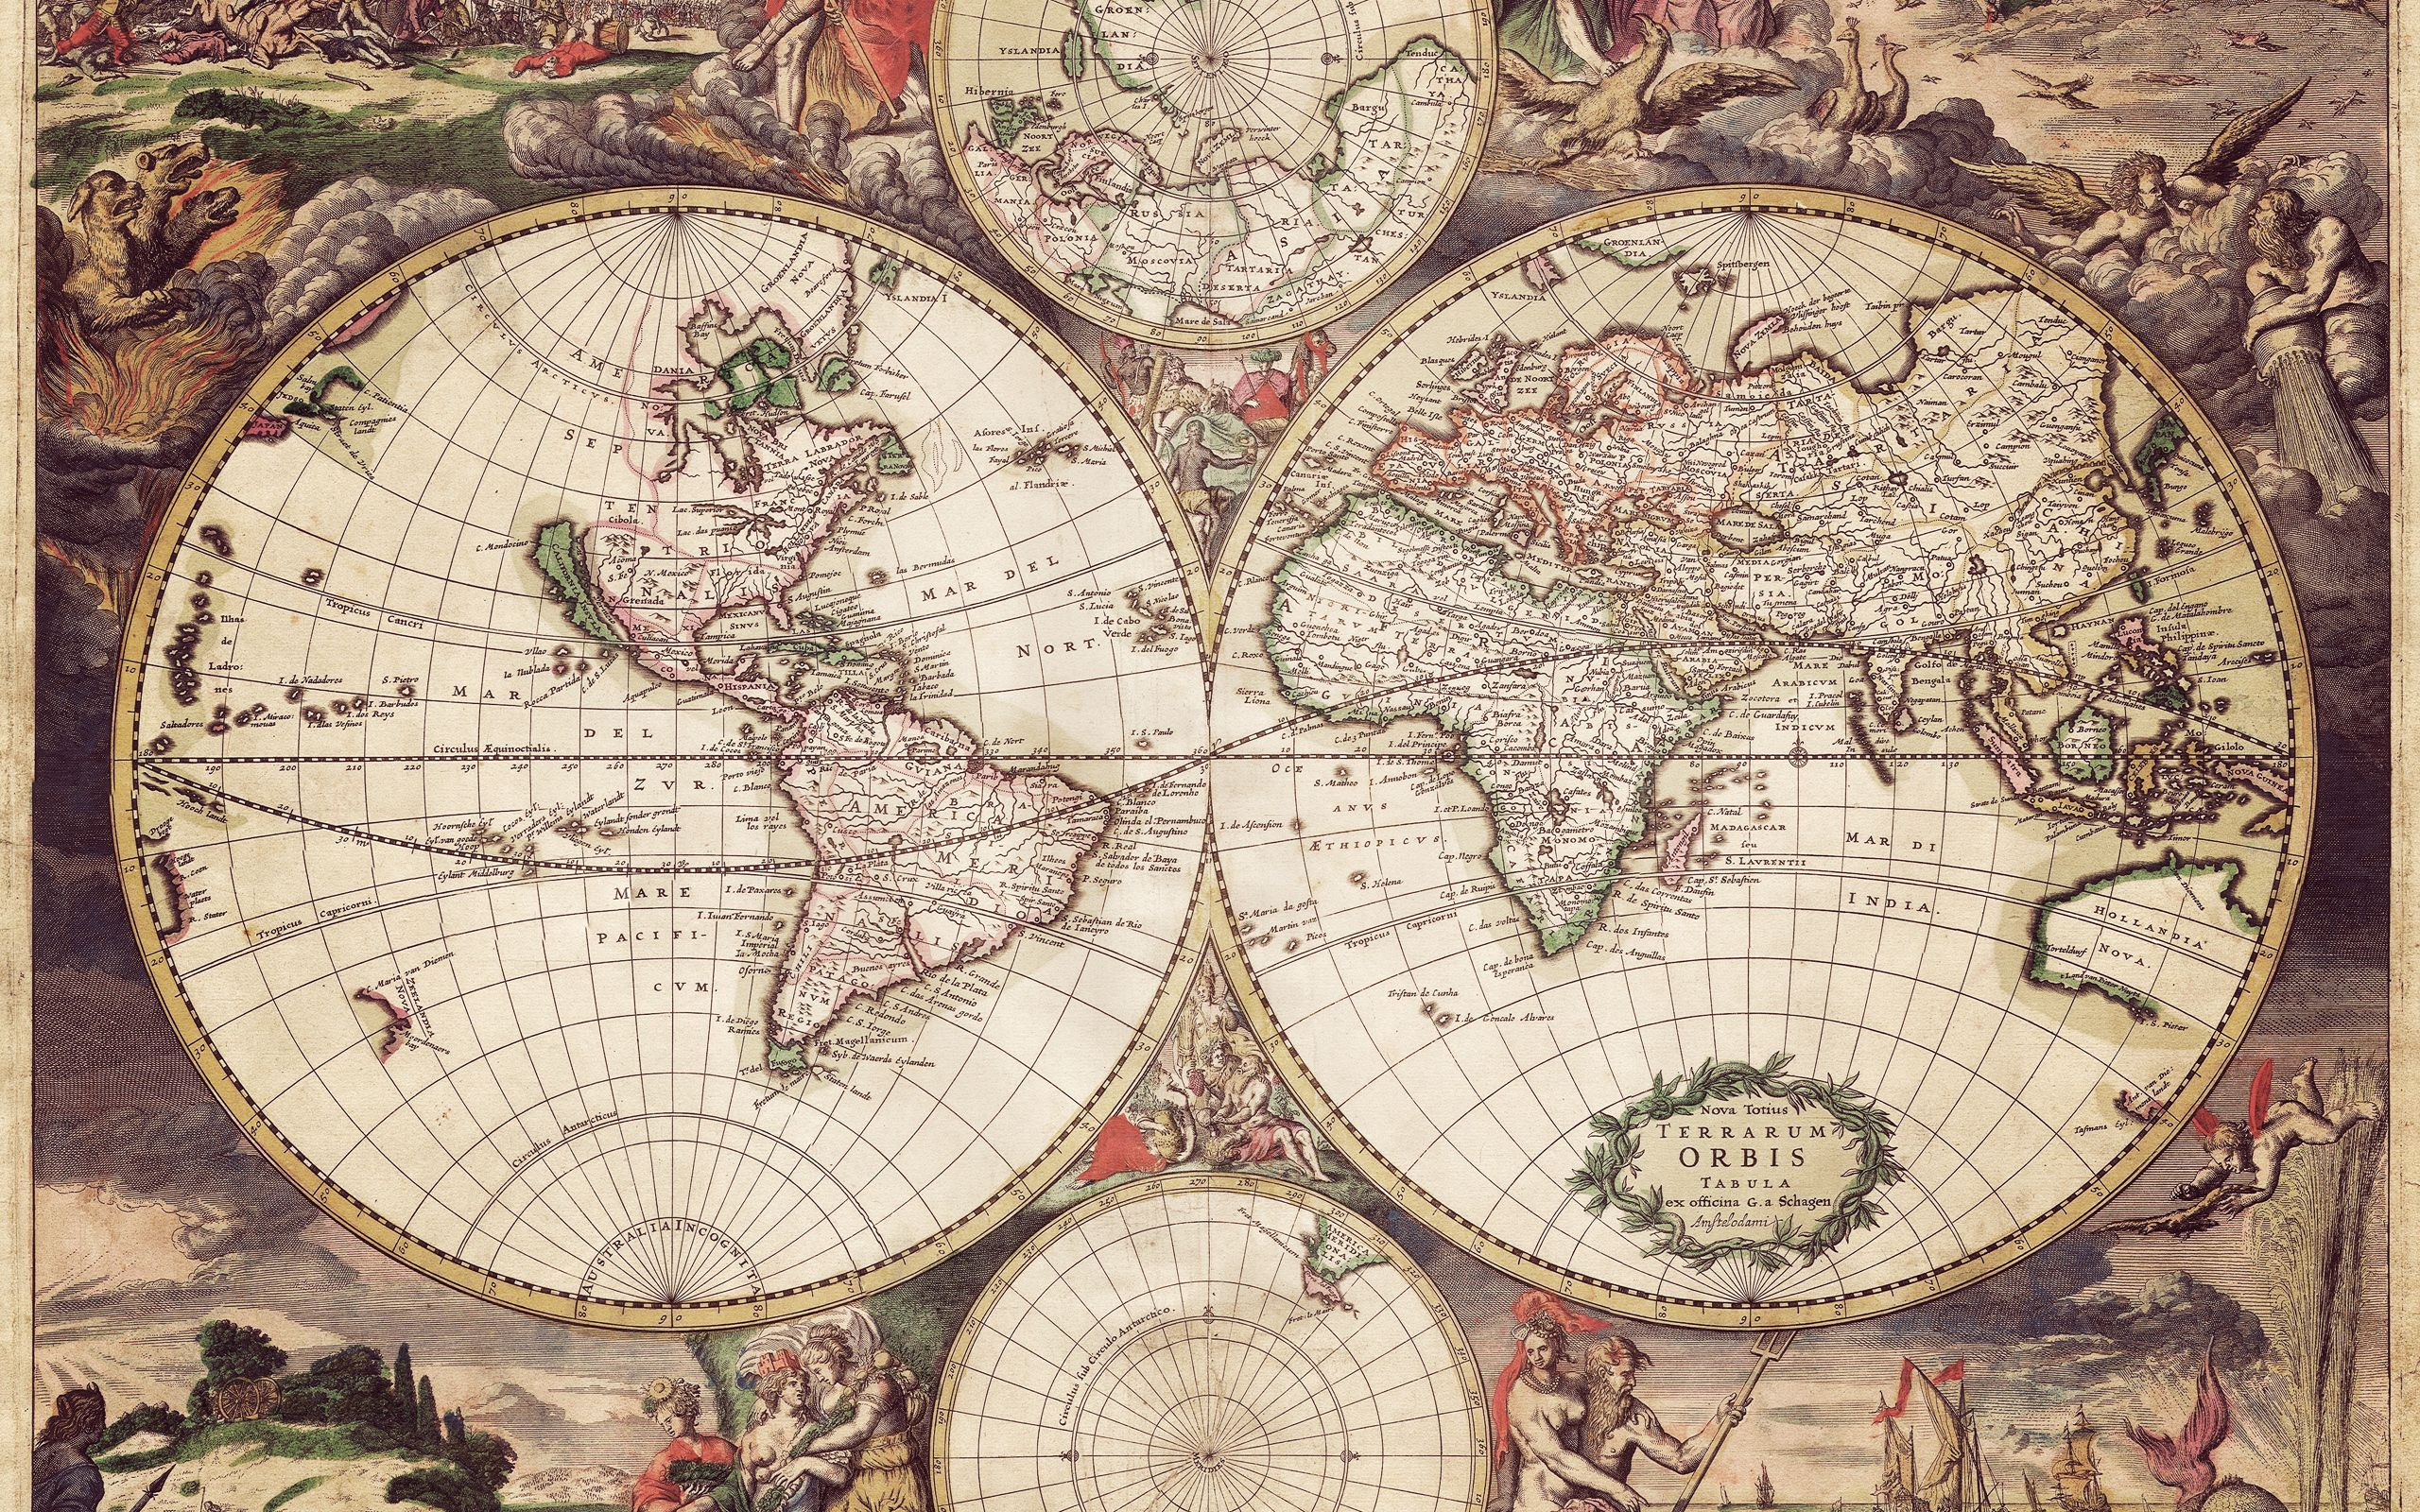 Old World Map Awesome As A Ceiling Antique World Map World Map Poster Ancient World Maps